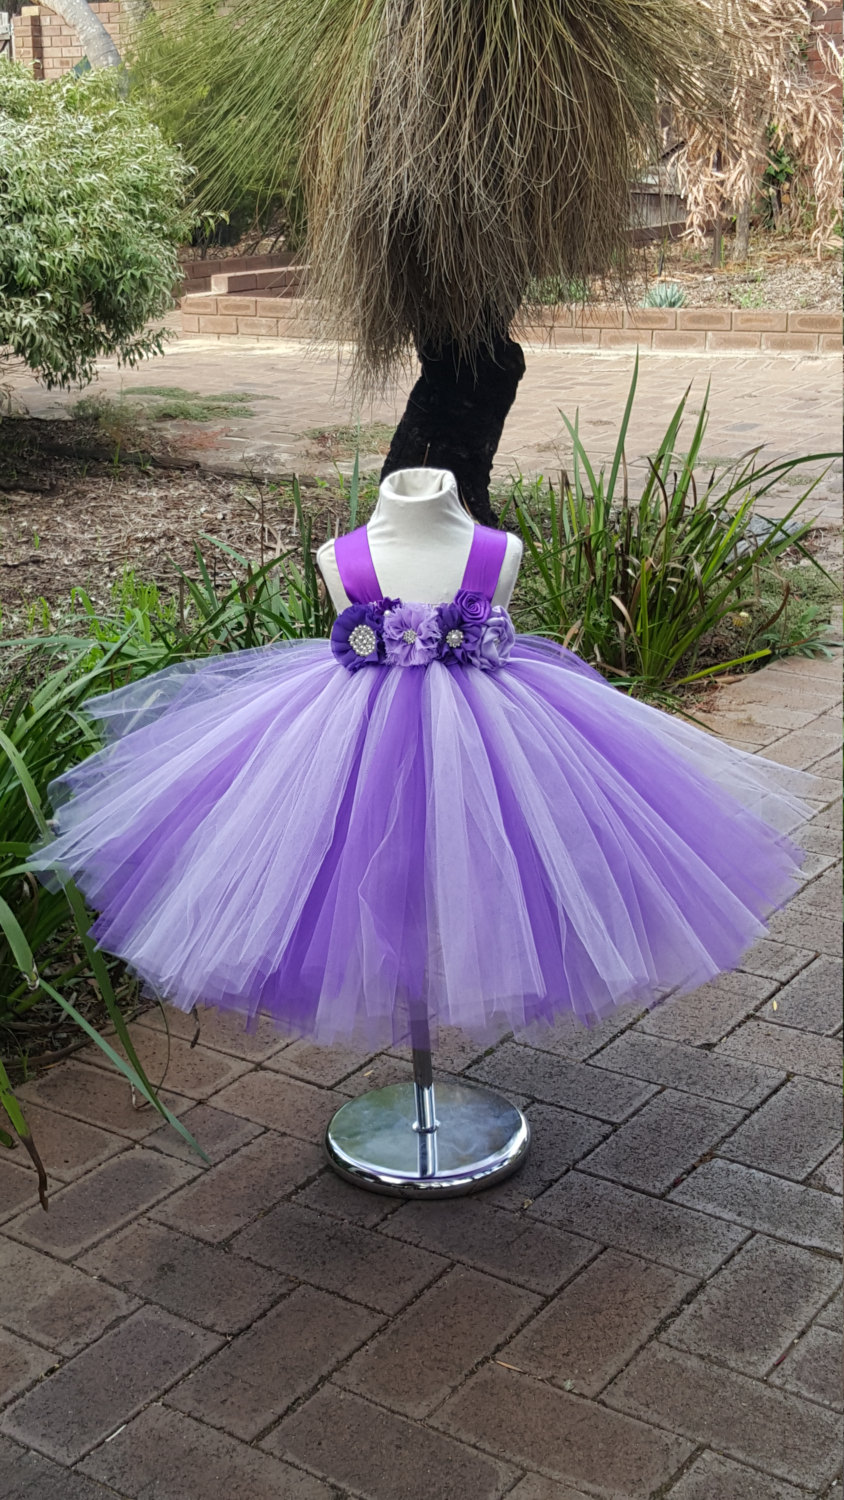 Princess Tutu Dress- Purple Lavender - Birthday, Wedding, Flower Girl Dress- Dresses